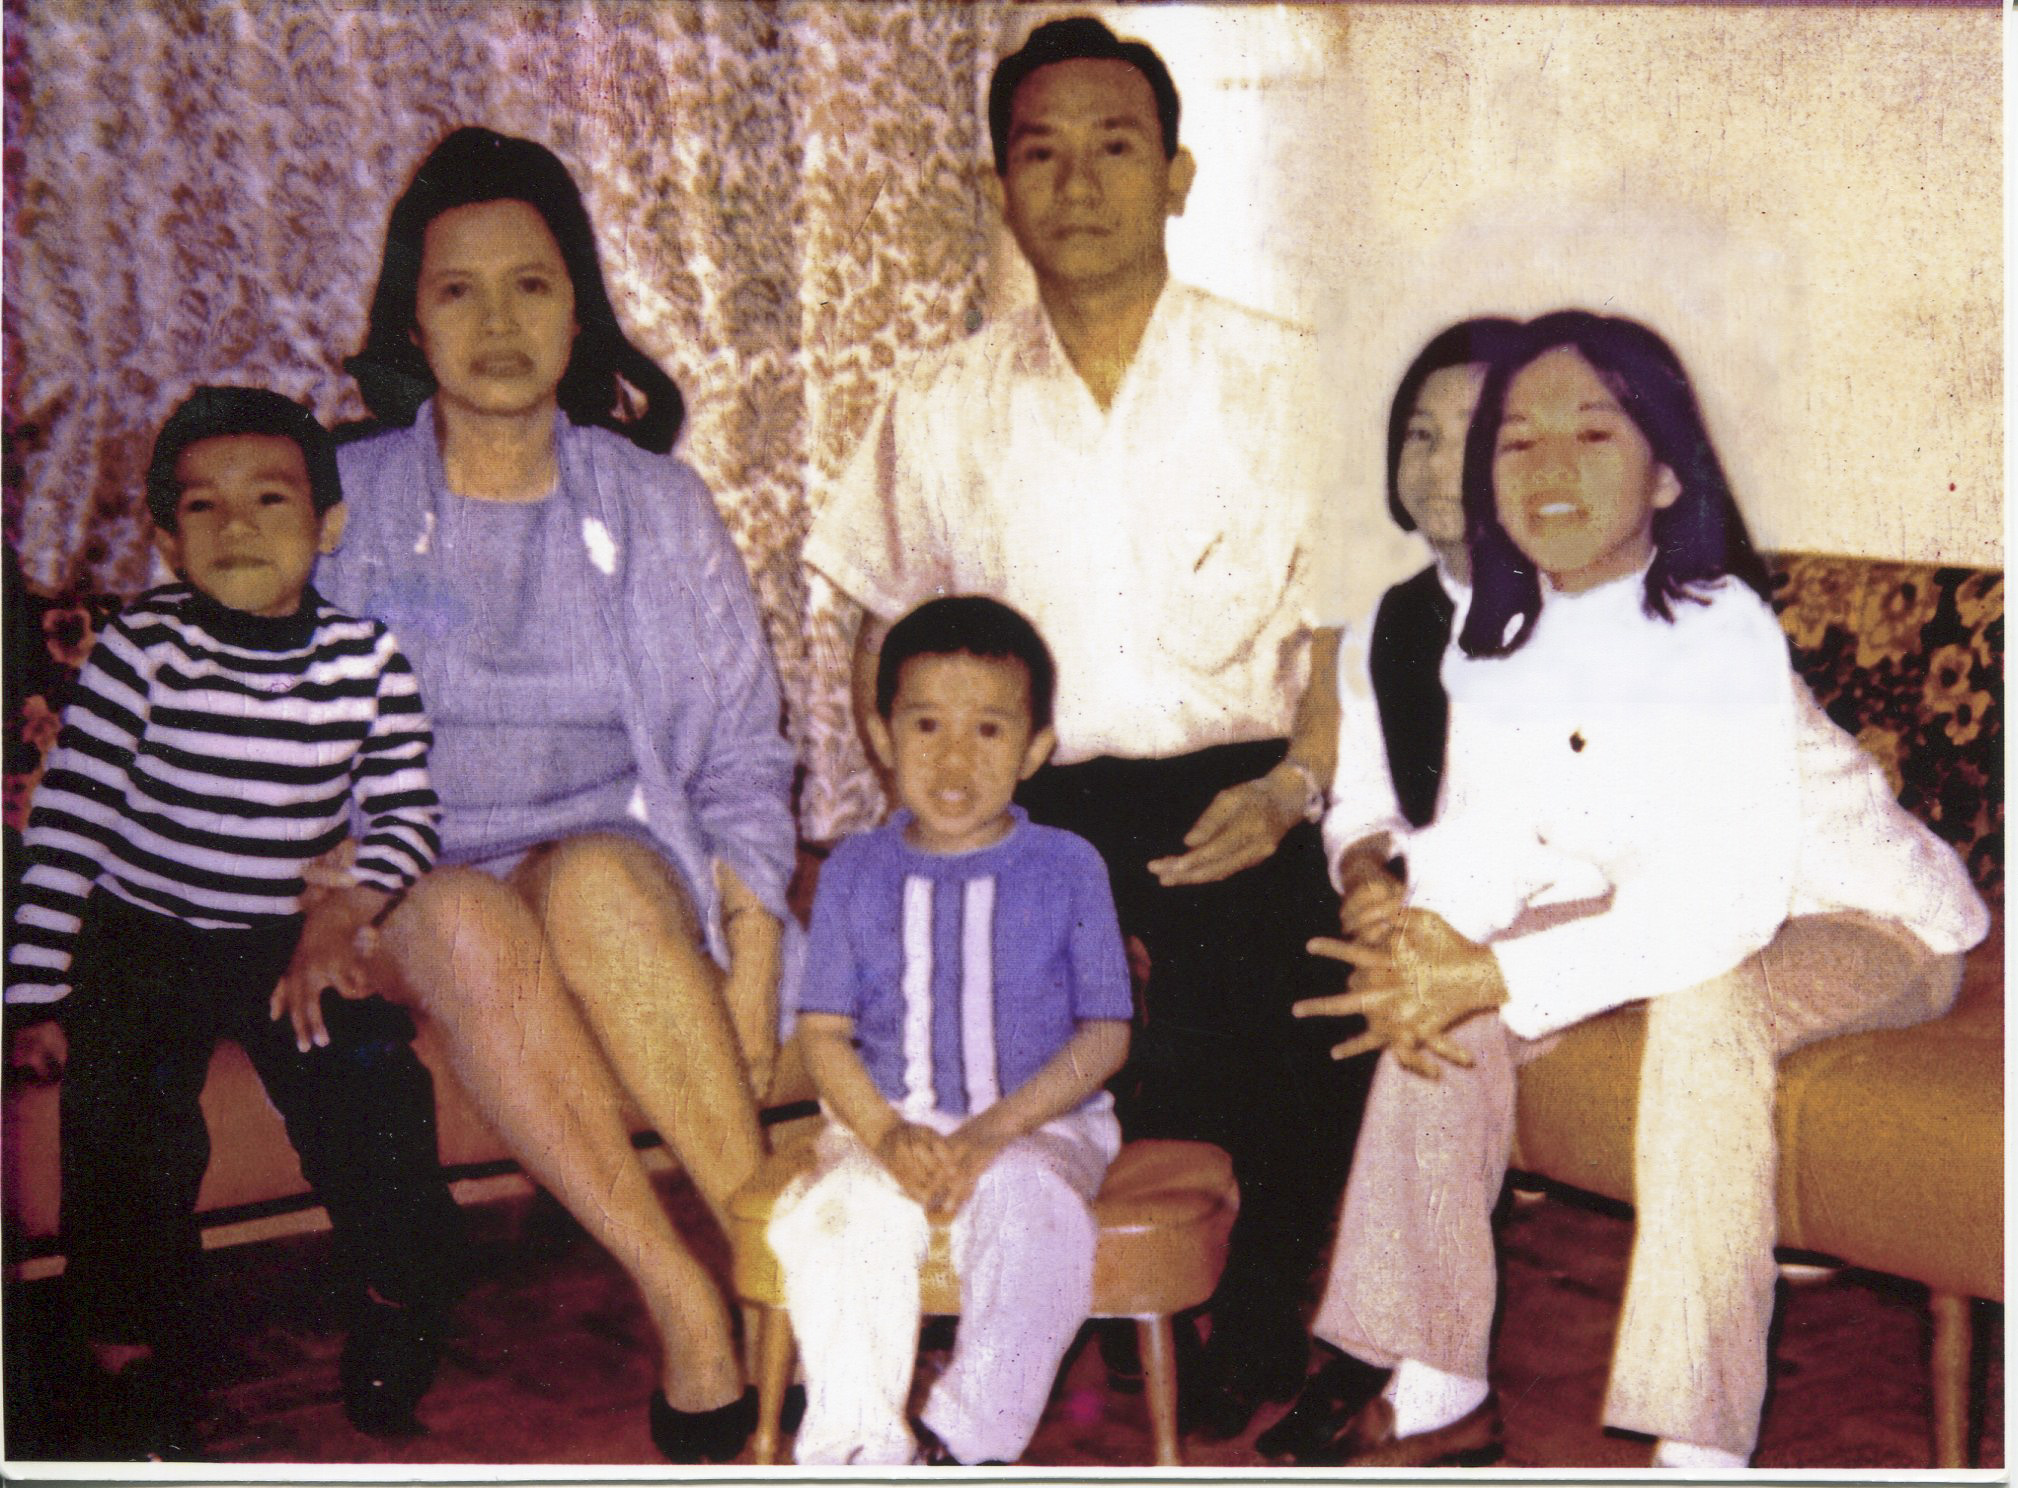 """Photo of Arguelles and family This photo is a copy but the original was taken in 1970. Arguelles acquired it in 2011 from her mother's collection of her father's things (after his death). The photo was taken in Toronto, Canada. Left to right are pictured: Lester (brother), Magdalena (mother), Gene (brother), Jose (dad), Magdalena, Althea (sister). Arguelles said the photo may have been taken at a party because the people pictured all dressed up in """"fineries"""" and food was served. Arguelles talked about her family's early years of being immigrants in Canada. The family was intact but her parents still struggled. Arguelles said the photo makes her think of her experiences and struggles in the early years in Canada. Arguelles also highlighted her sister, who wrote a poem about Canada that won an award. Her sister's poem was read over the school intercom and used an Indian word for the title, which sticks out for Arguelles. She was proud of her sister. They all struggled though they were different. Arguelles said she knows it was hard on her parents.   Any views, findings, conclusions, or recommendations expressed in this story do not necessarily represent those of the National Endowment for the Humanities. (c) Field Museum of Natural History - CC BY-NC 4.0"""